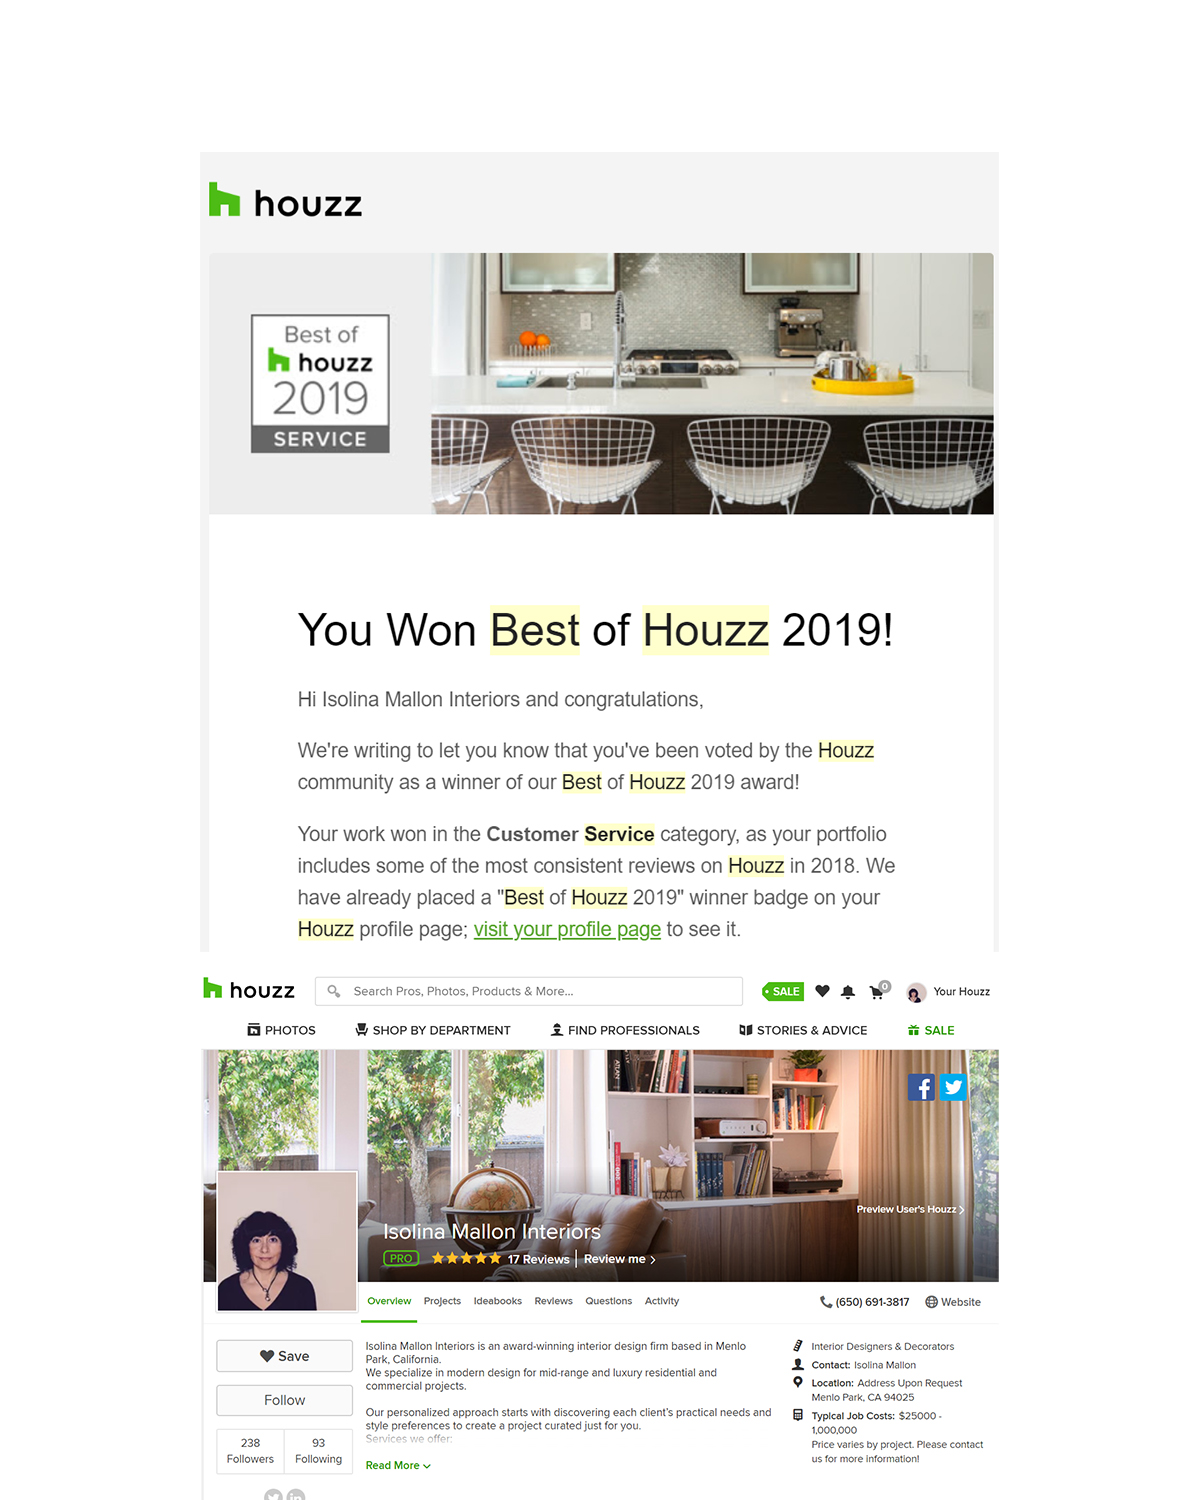 thanks to houzz for the best of year 2019 award   The 7-year old interior design firm was chosen by the more than 40 million monthly unique users that comprise the Houzz community from among more than 2.1 million active home building, remodeling and design industry professionals.   read more.